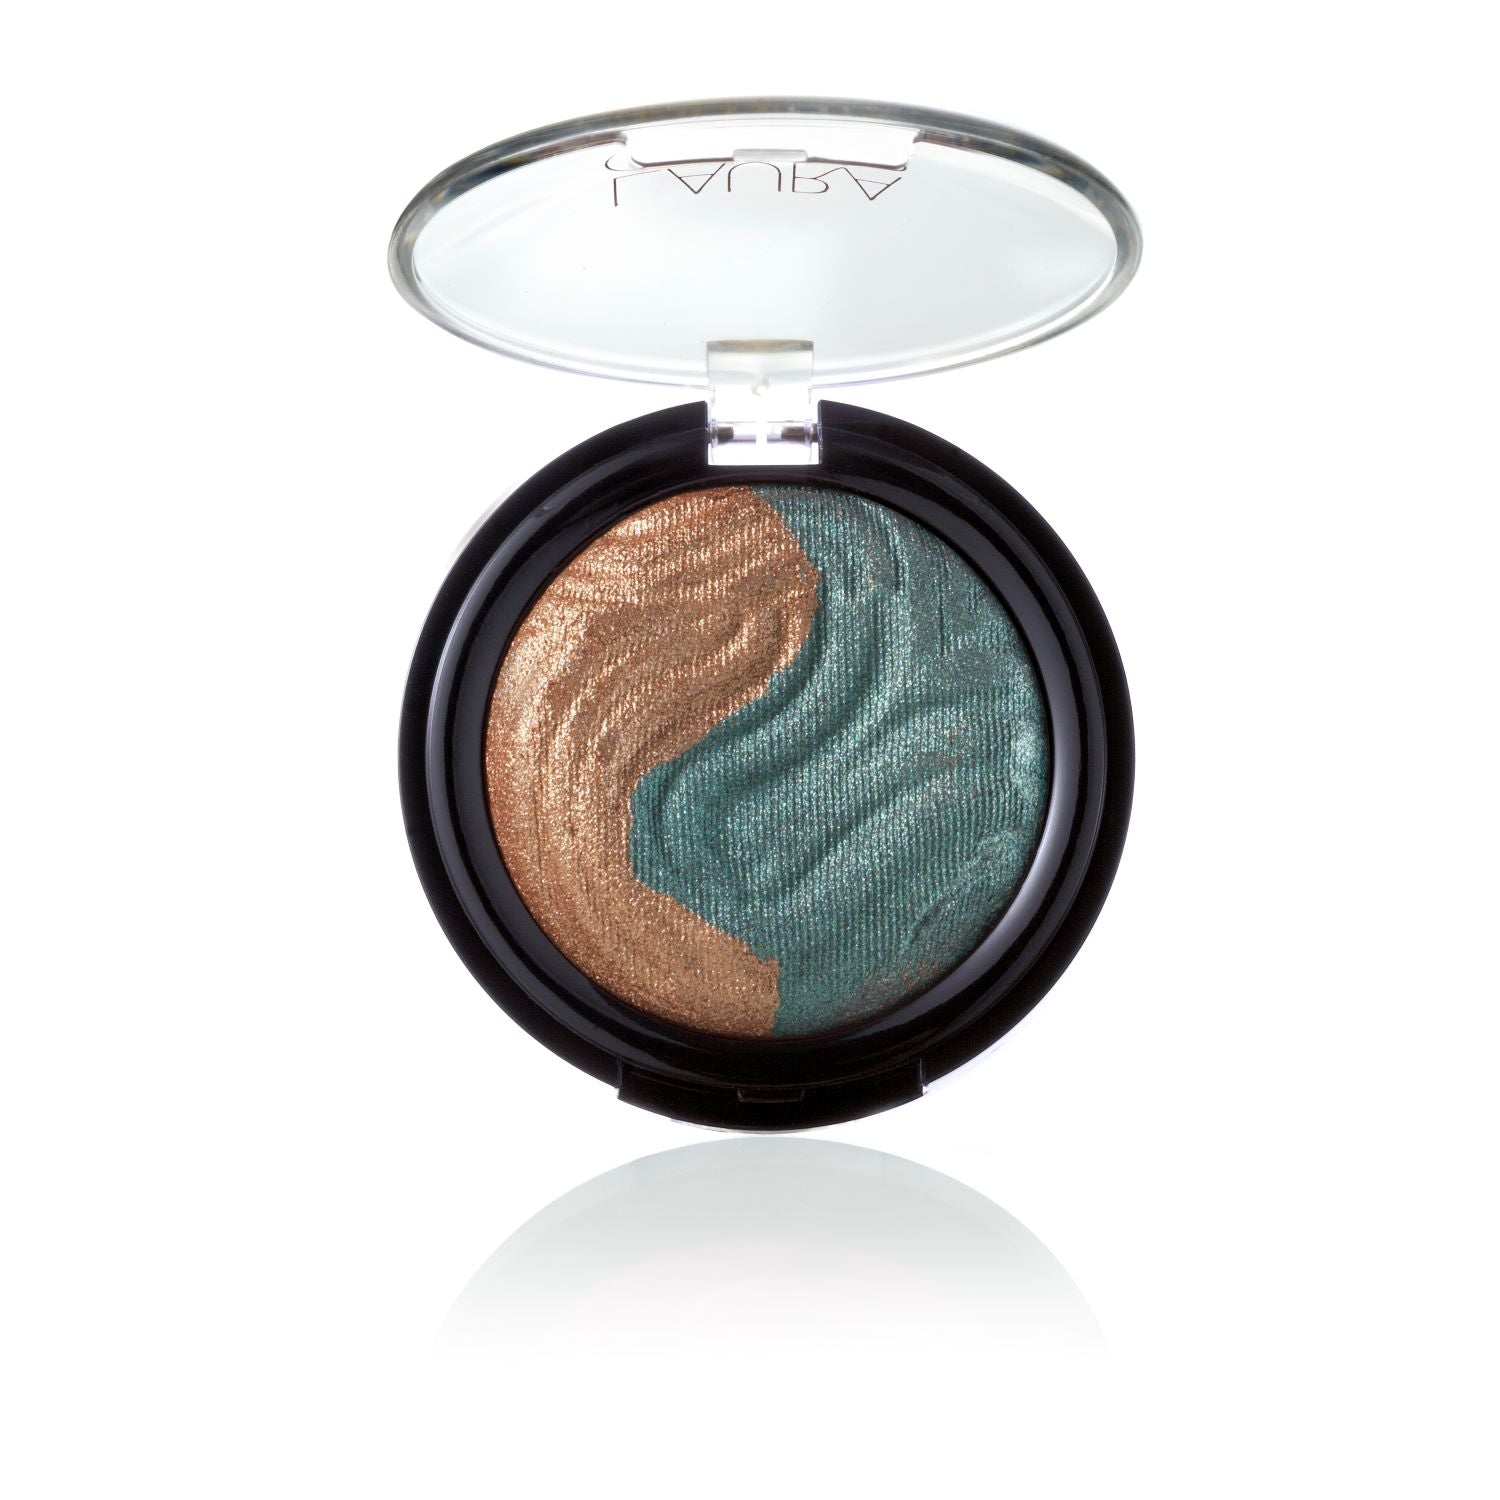 Baked Eclipse Eyeshadow Duo - Bronze / Emerald